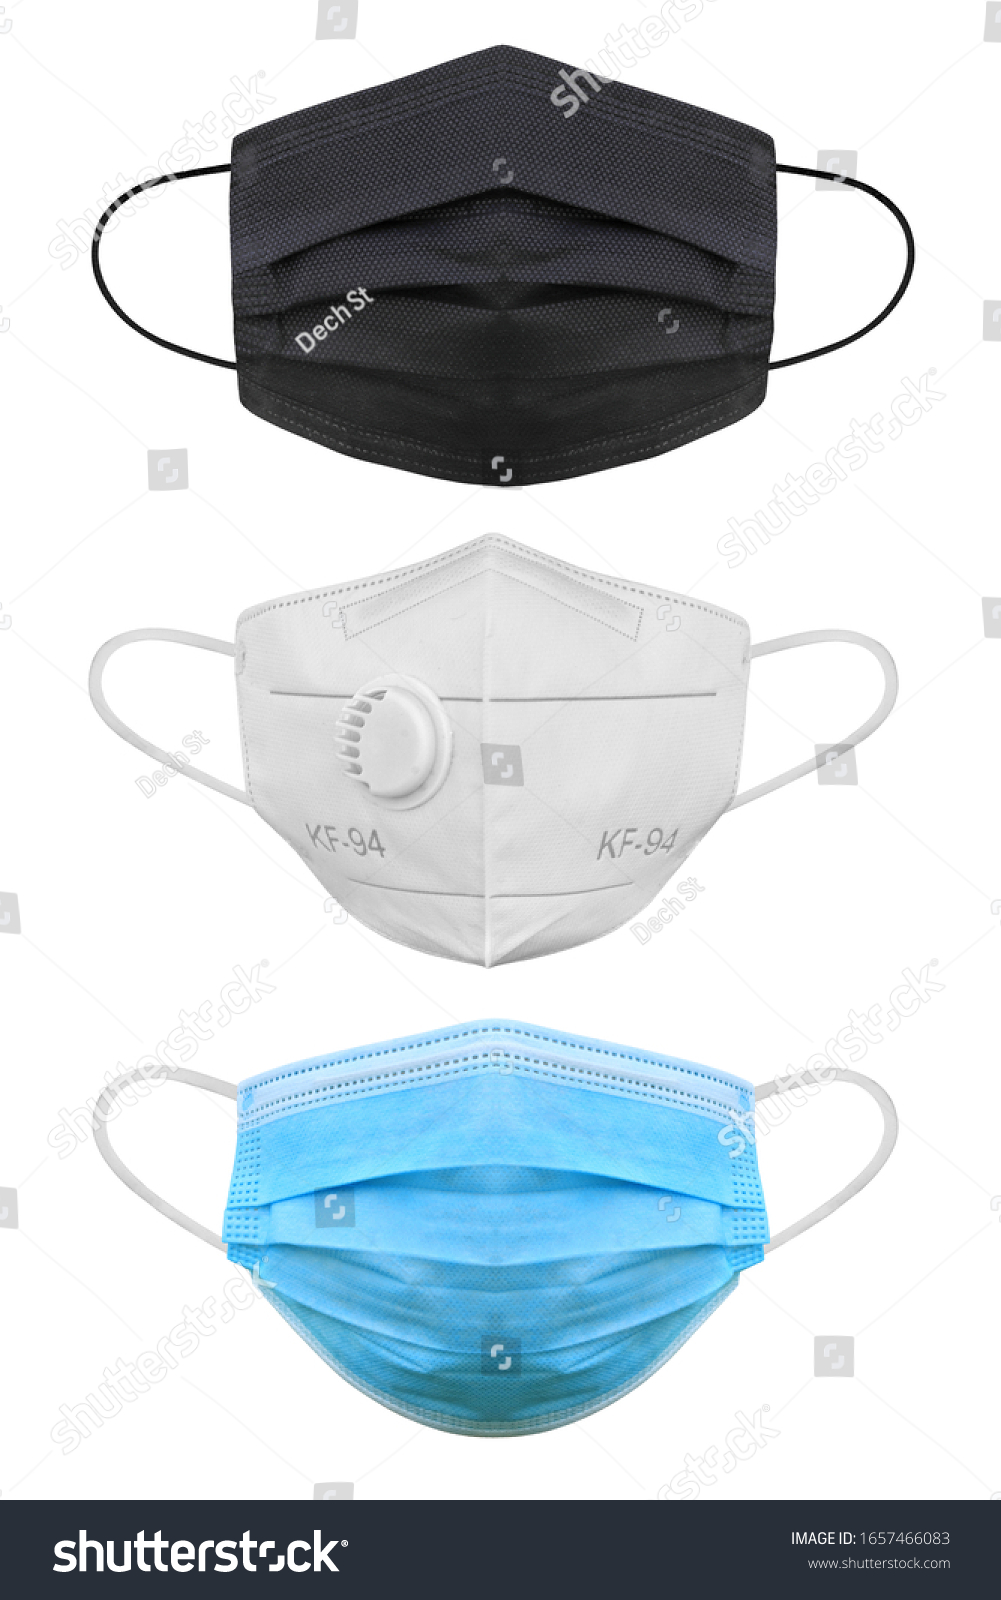 Doctor mask and corona virus protection isolated on a white background, With clipping path #1657466083